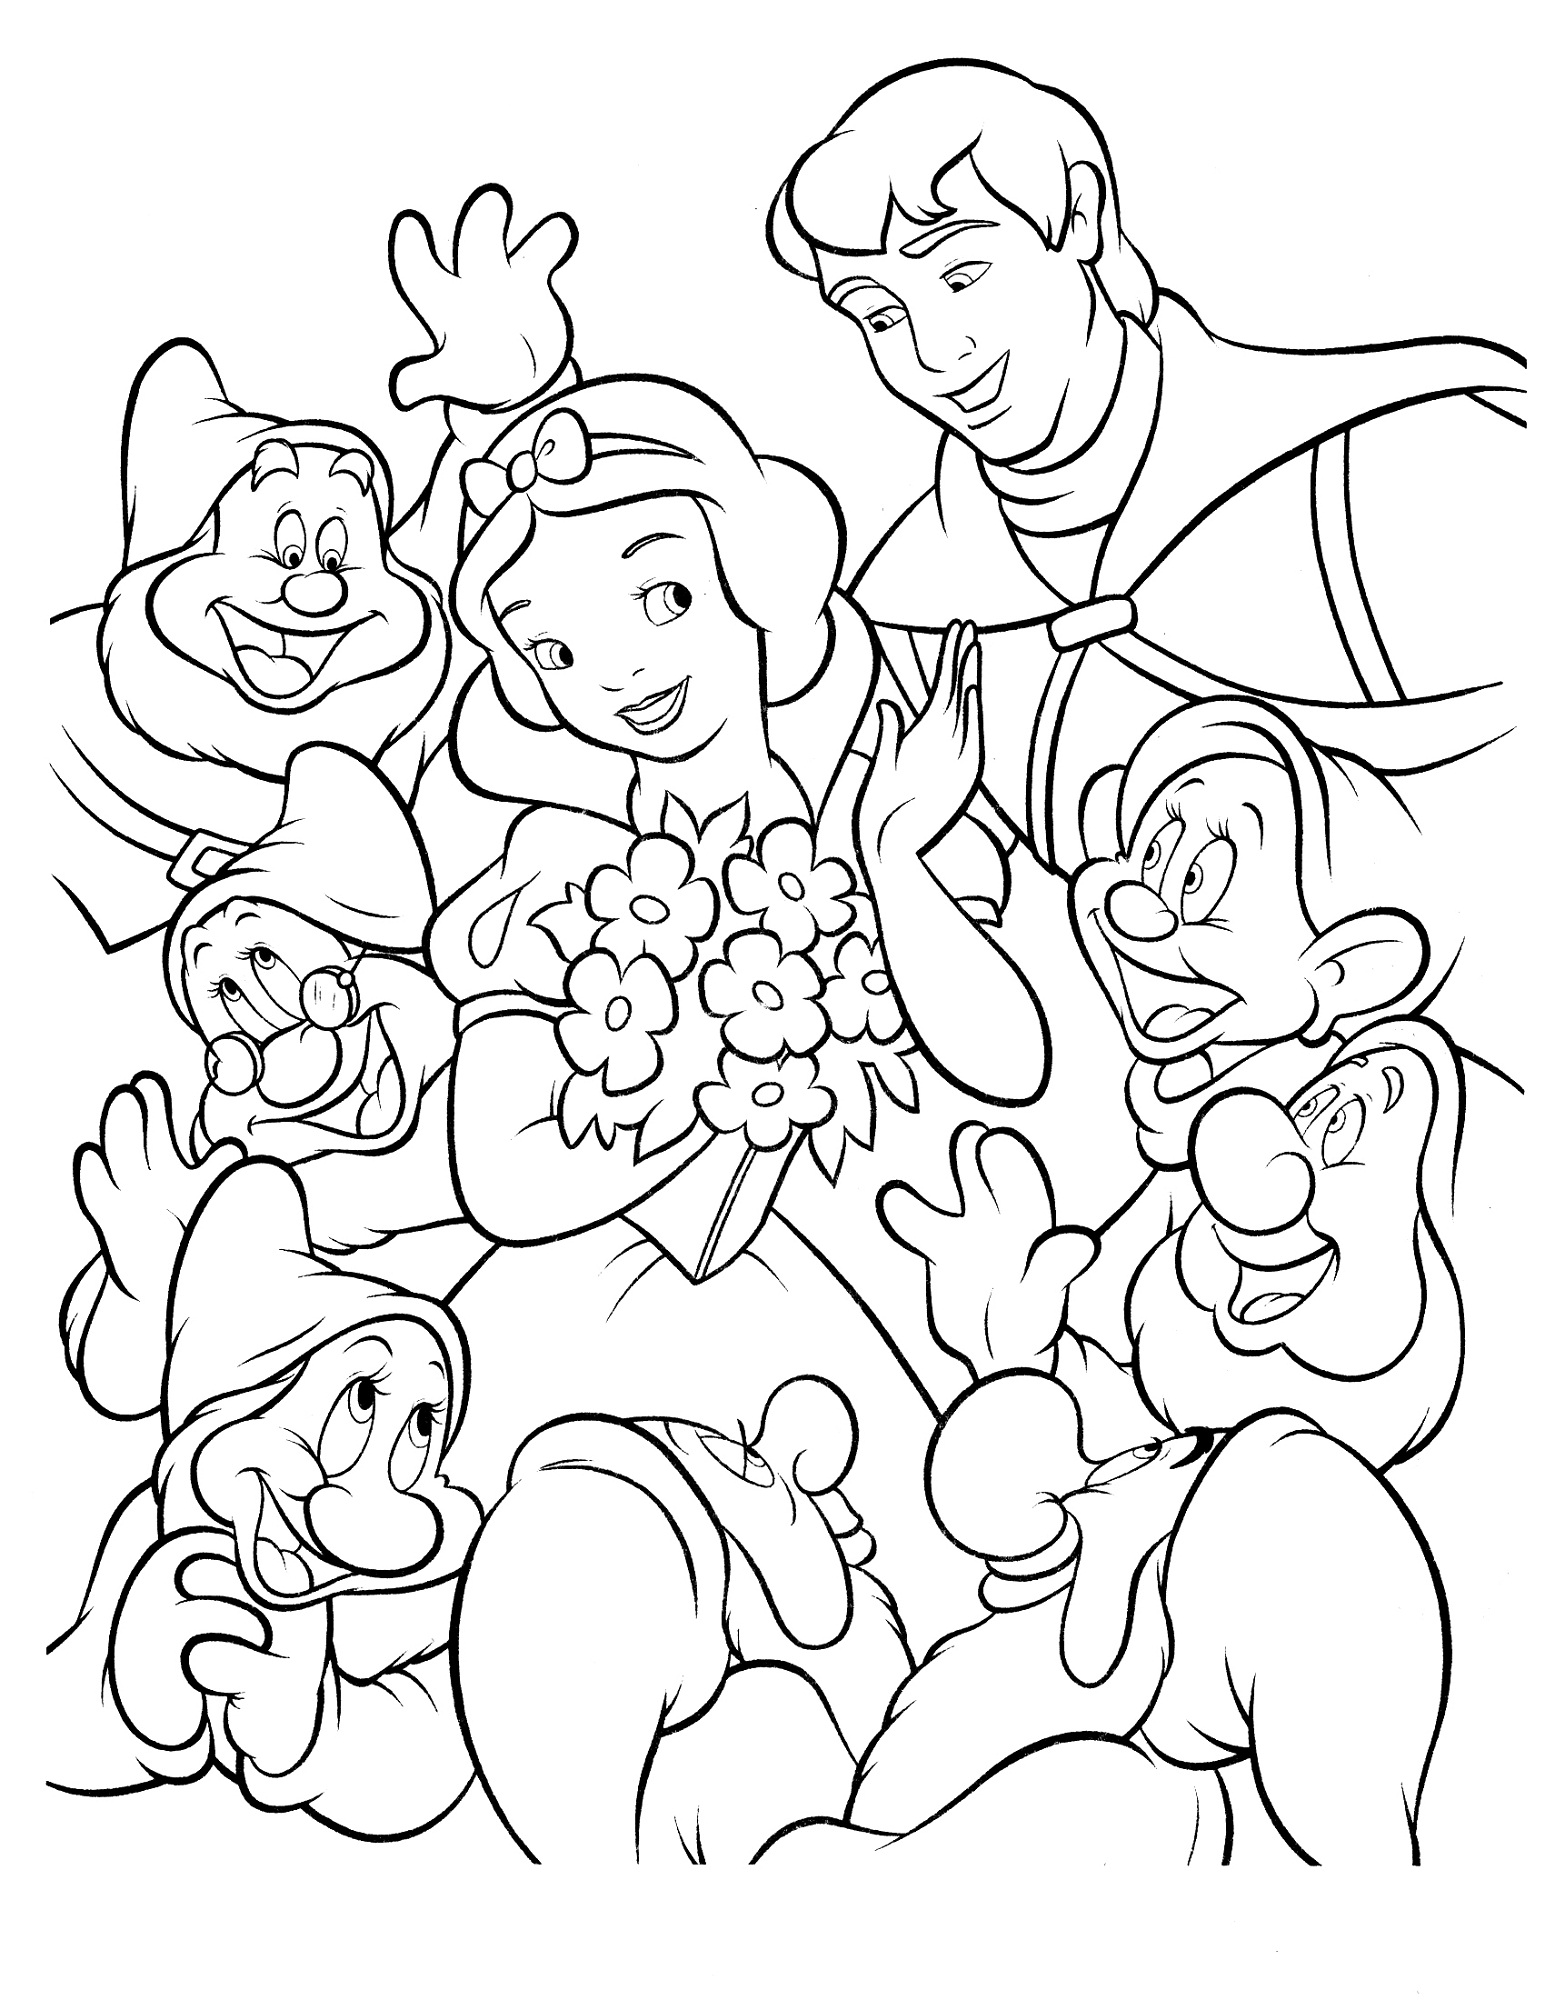 snow white for coloring snow white coloring pages disneyclipscom for snow coloring white